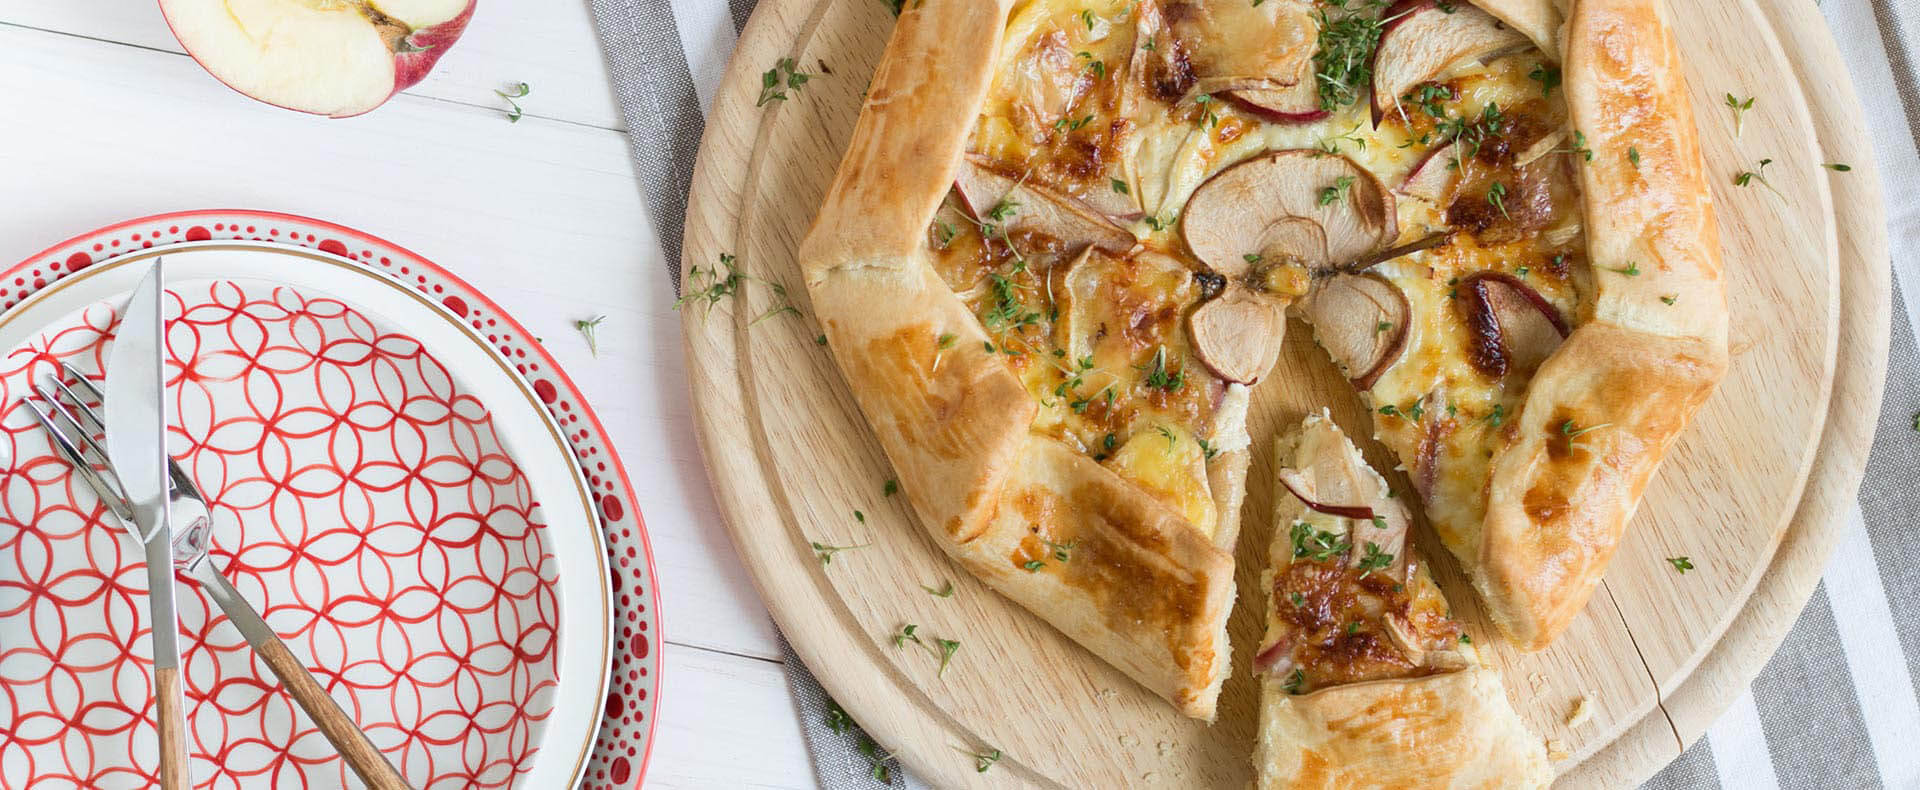 Camembert Galette Tante Fanny